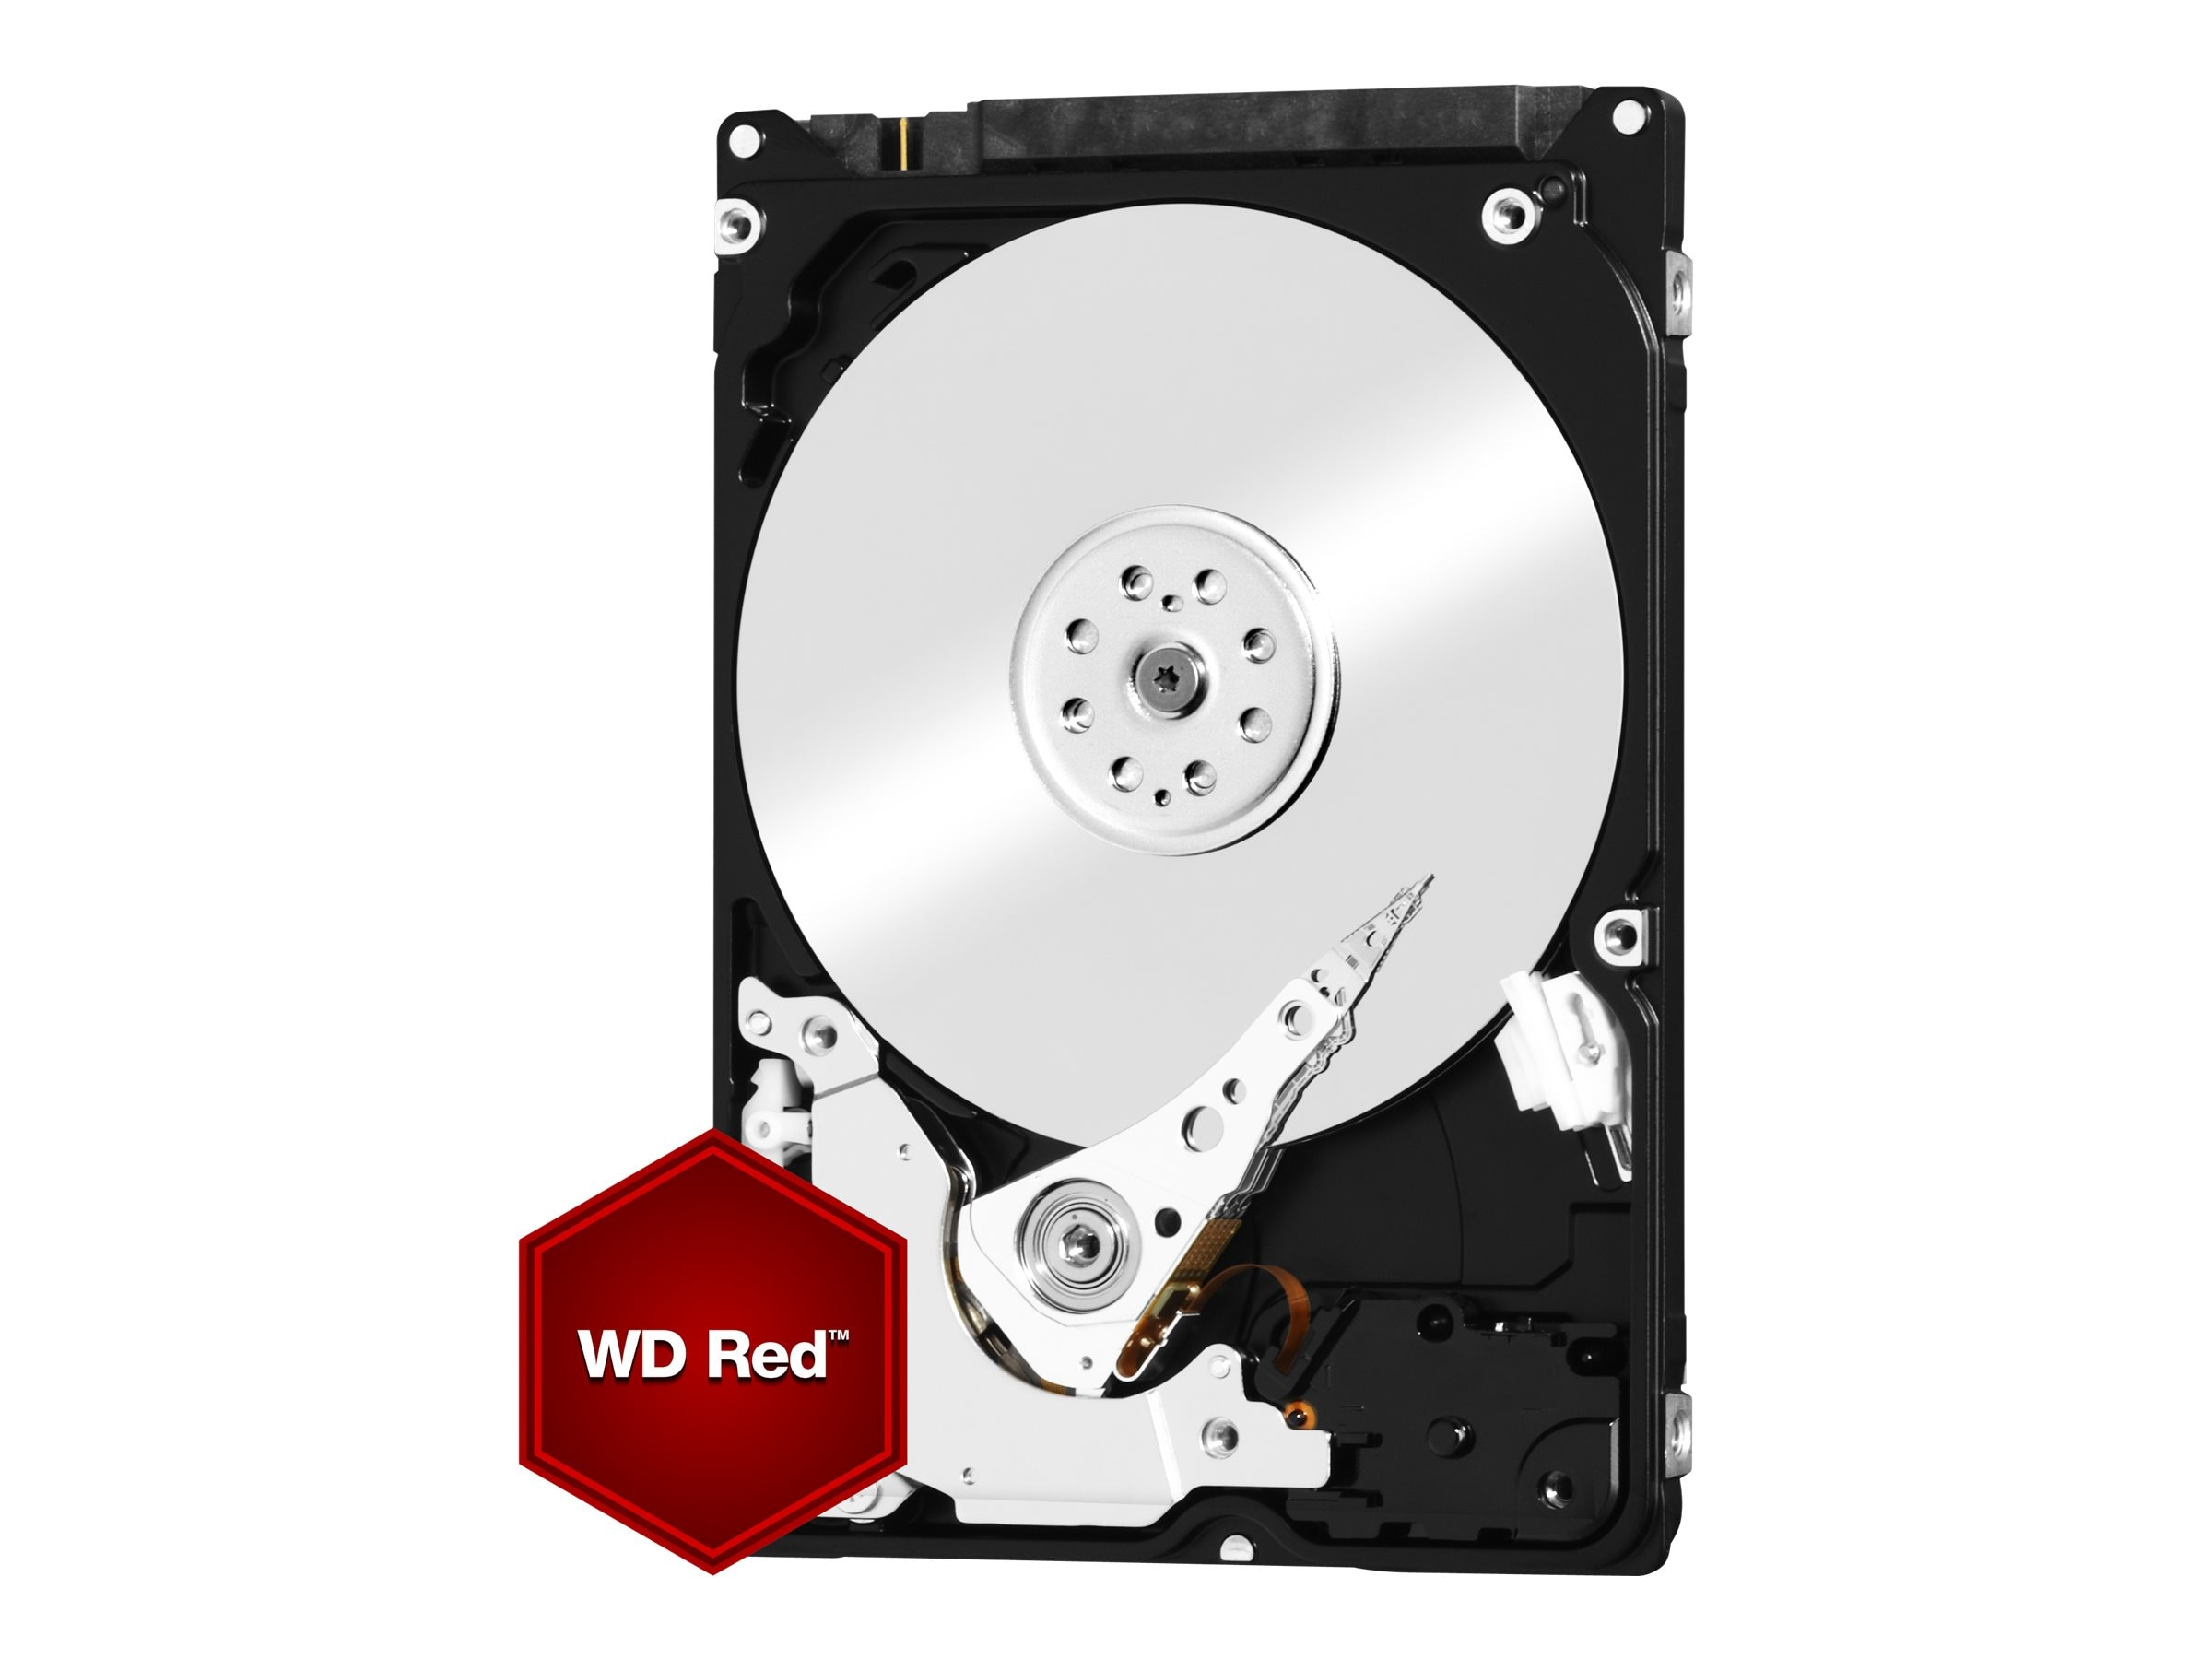 Open Box WD 750GB WD Red SATA 6Gb s 2.5 Internal NAS Hard Drive, WD7500BFCX, 31271701, Hard Drives - Internal